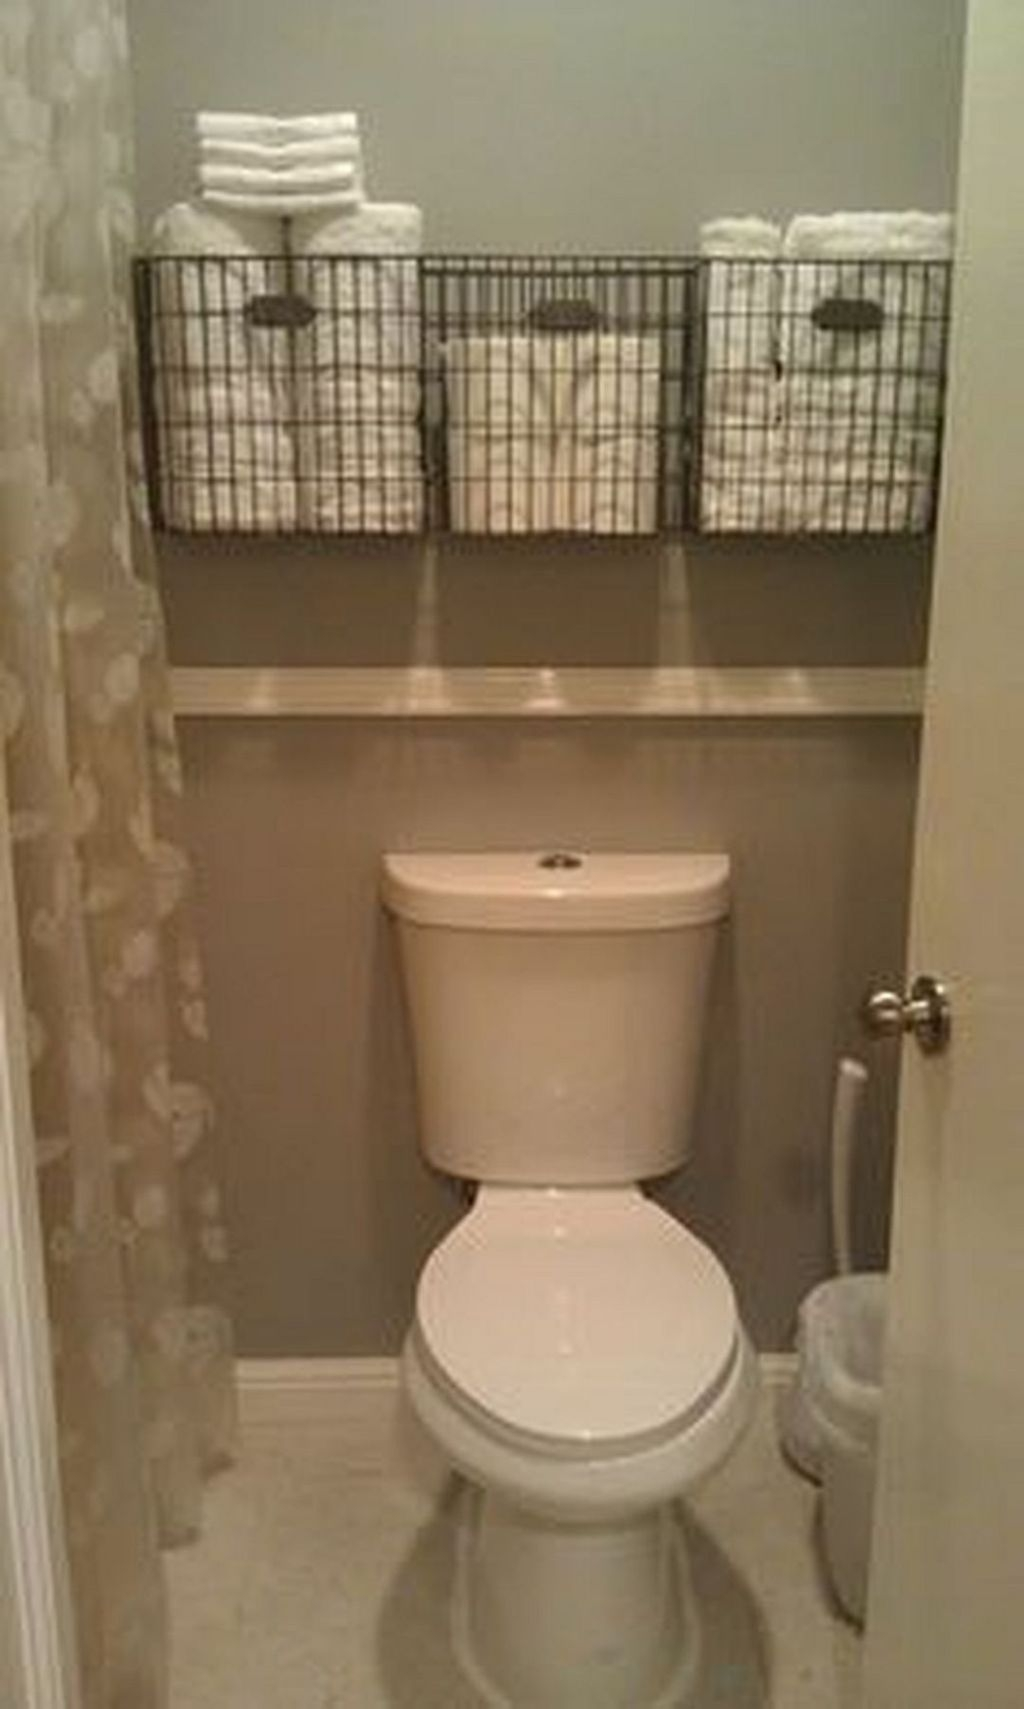 Fascinating Rv Remodel Ideas For Bathroom On A Budget04